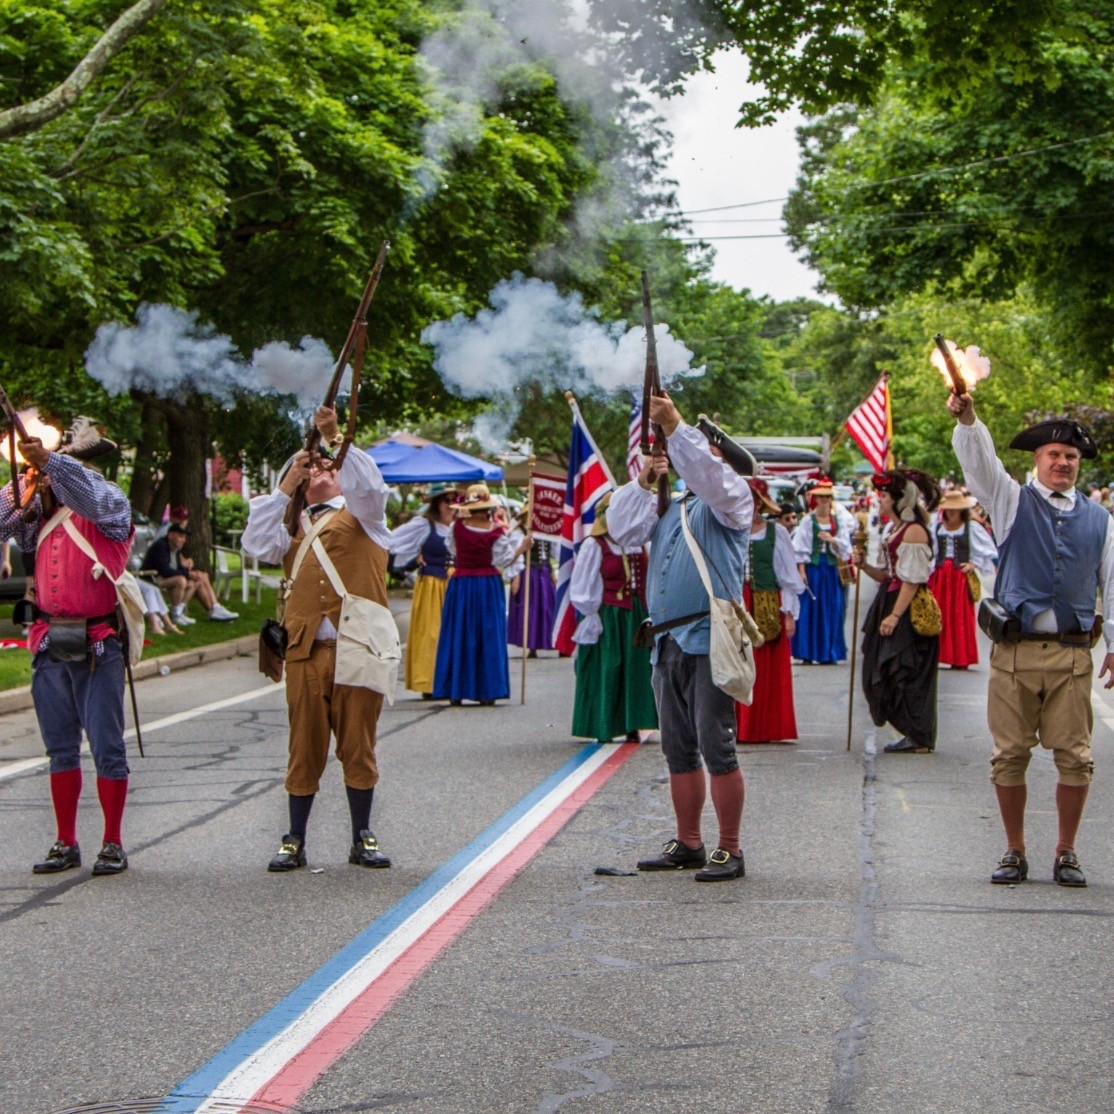 GoLocalProv | 10 Great Things to do in RI This Weekend - May 24, 2019